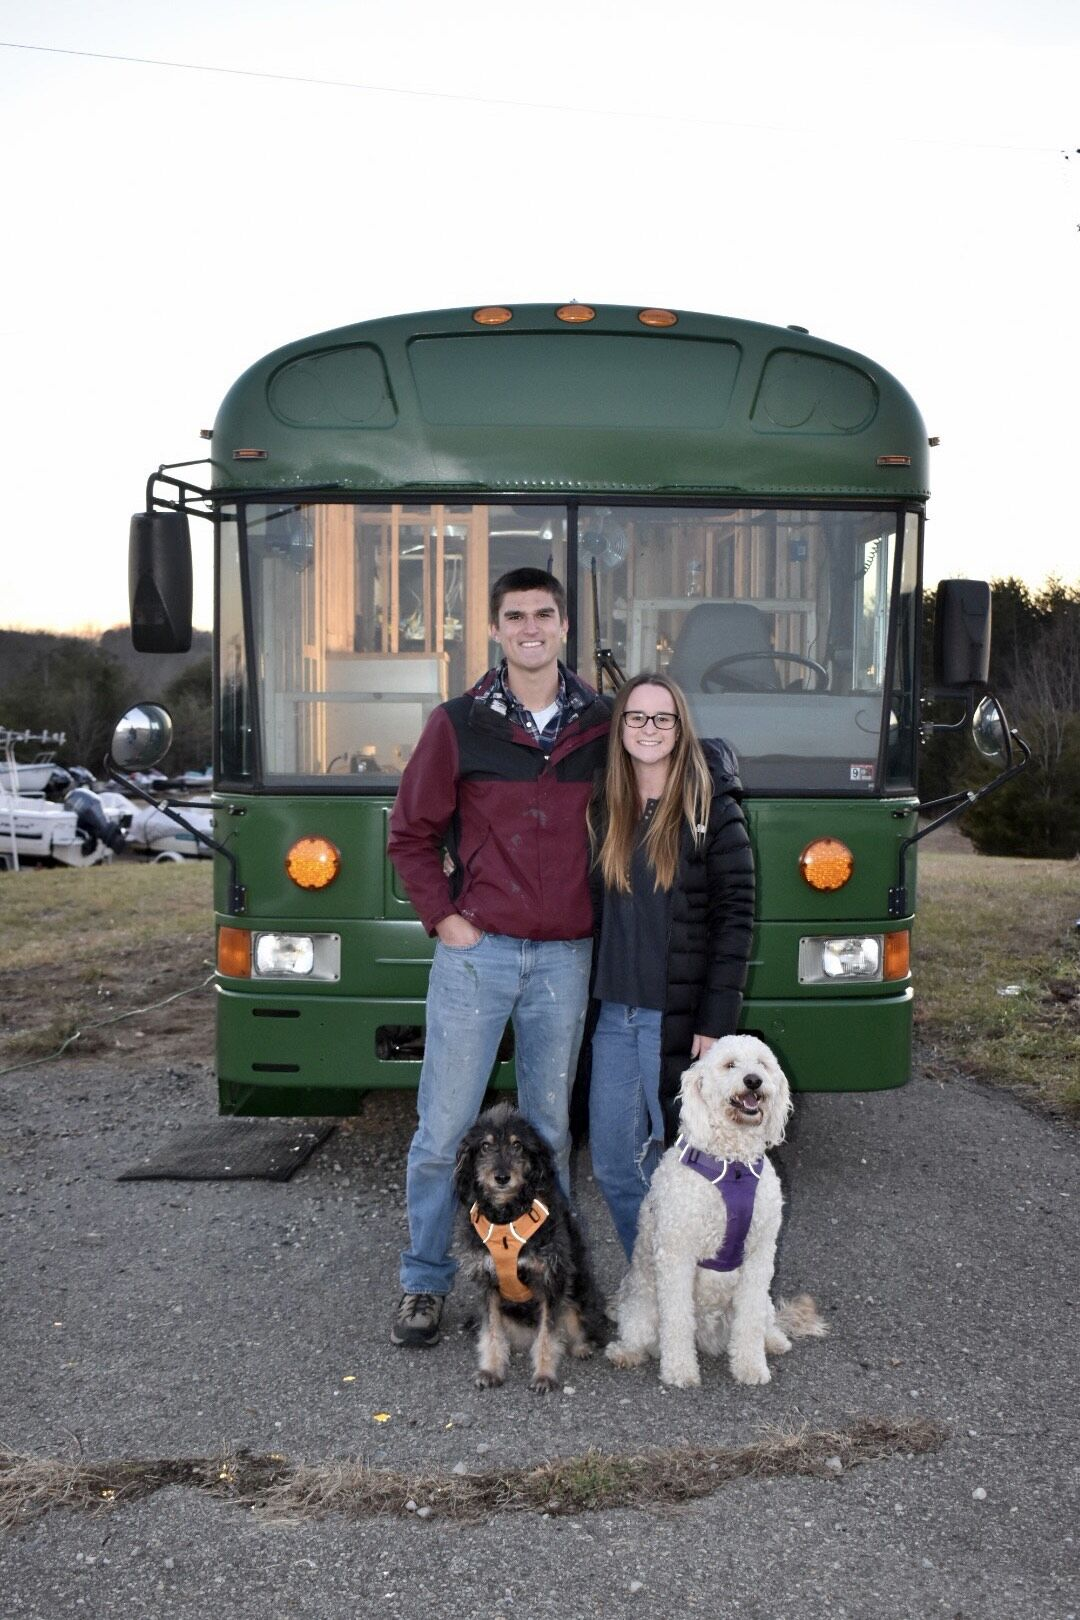 Lake couple prepares for life on the road in a remodeled school bus